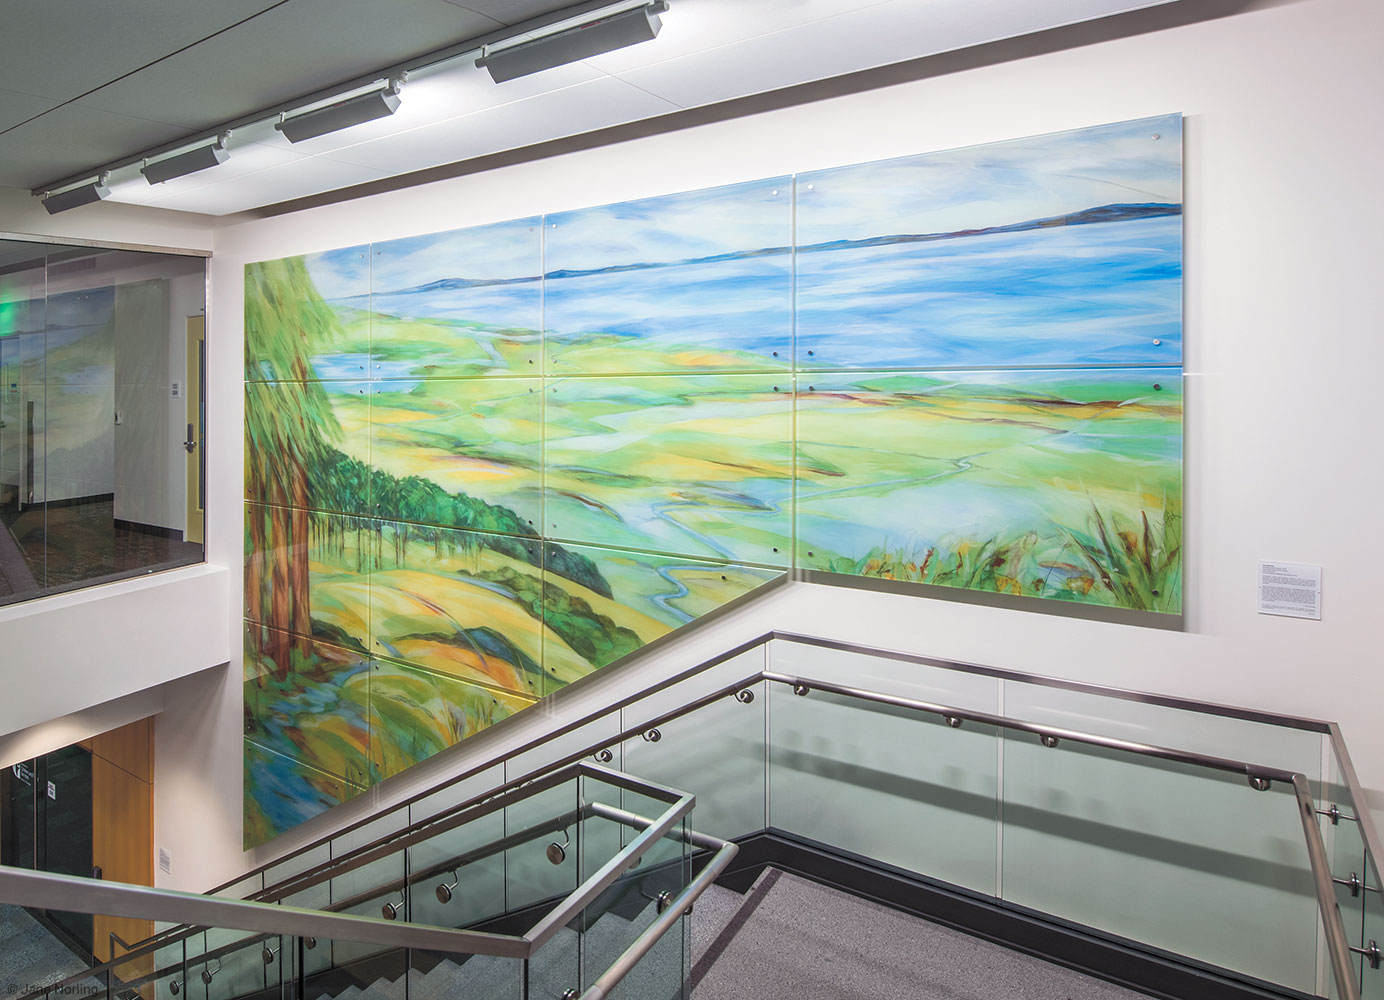 Alameda County Water , Lobby art seen from second floor. Digital ceramic print on glass in six parts. 2016 commission, Alameda County Arts Commission.